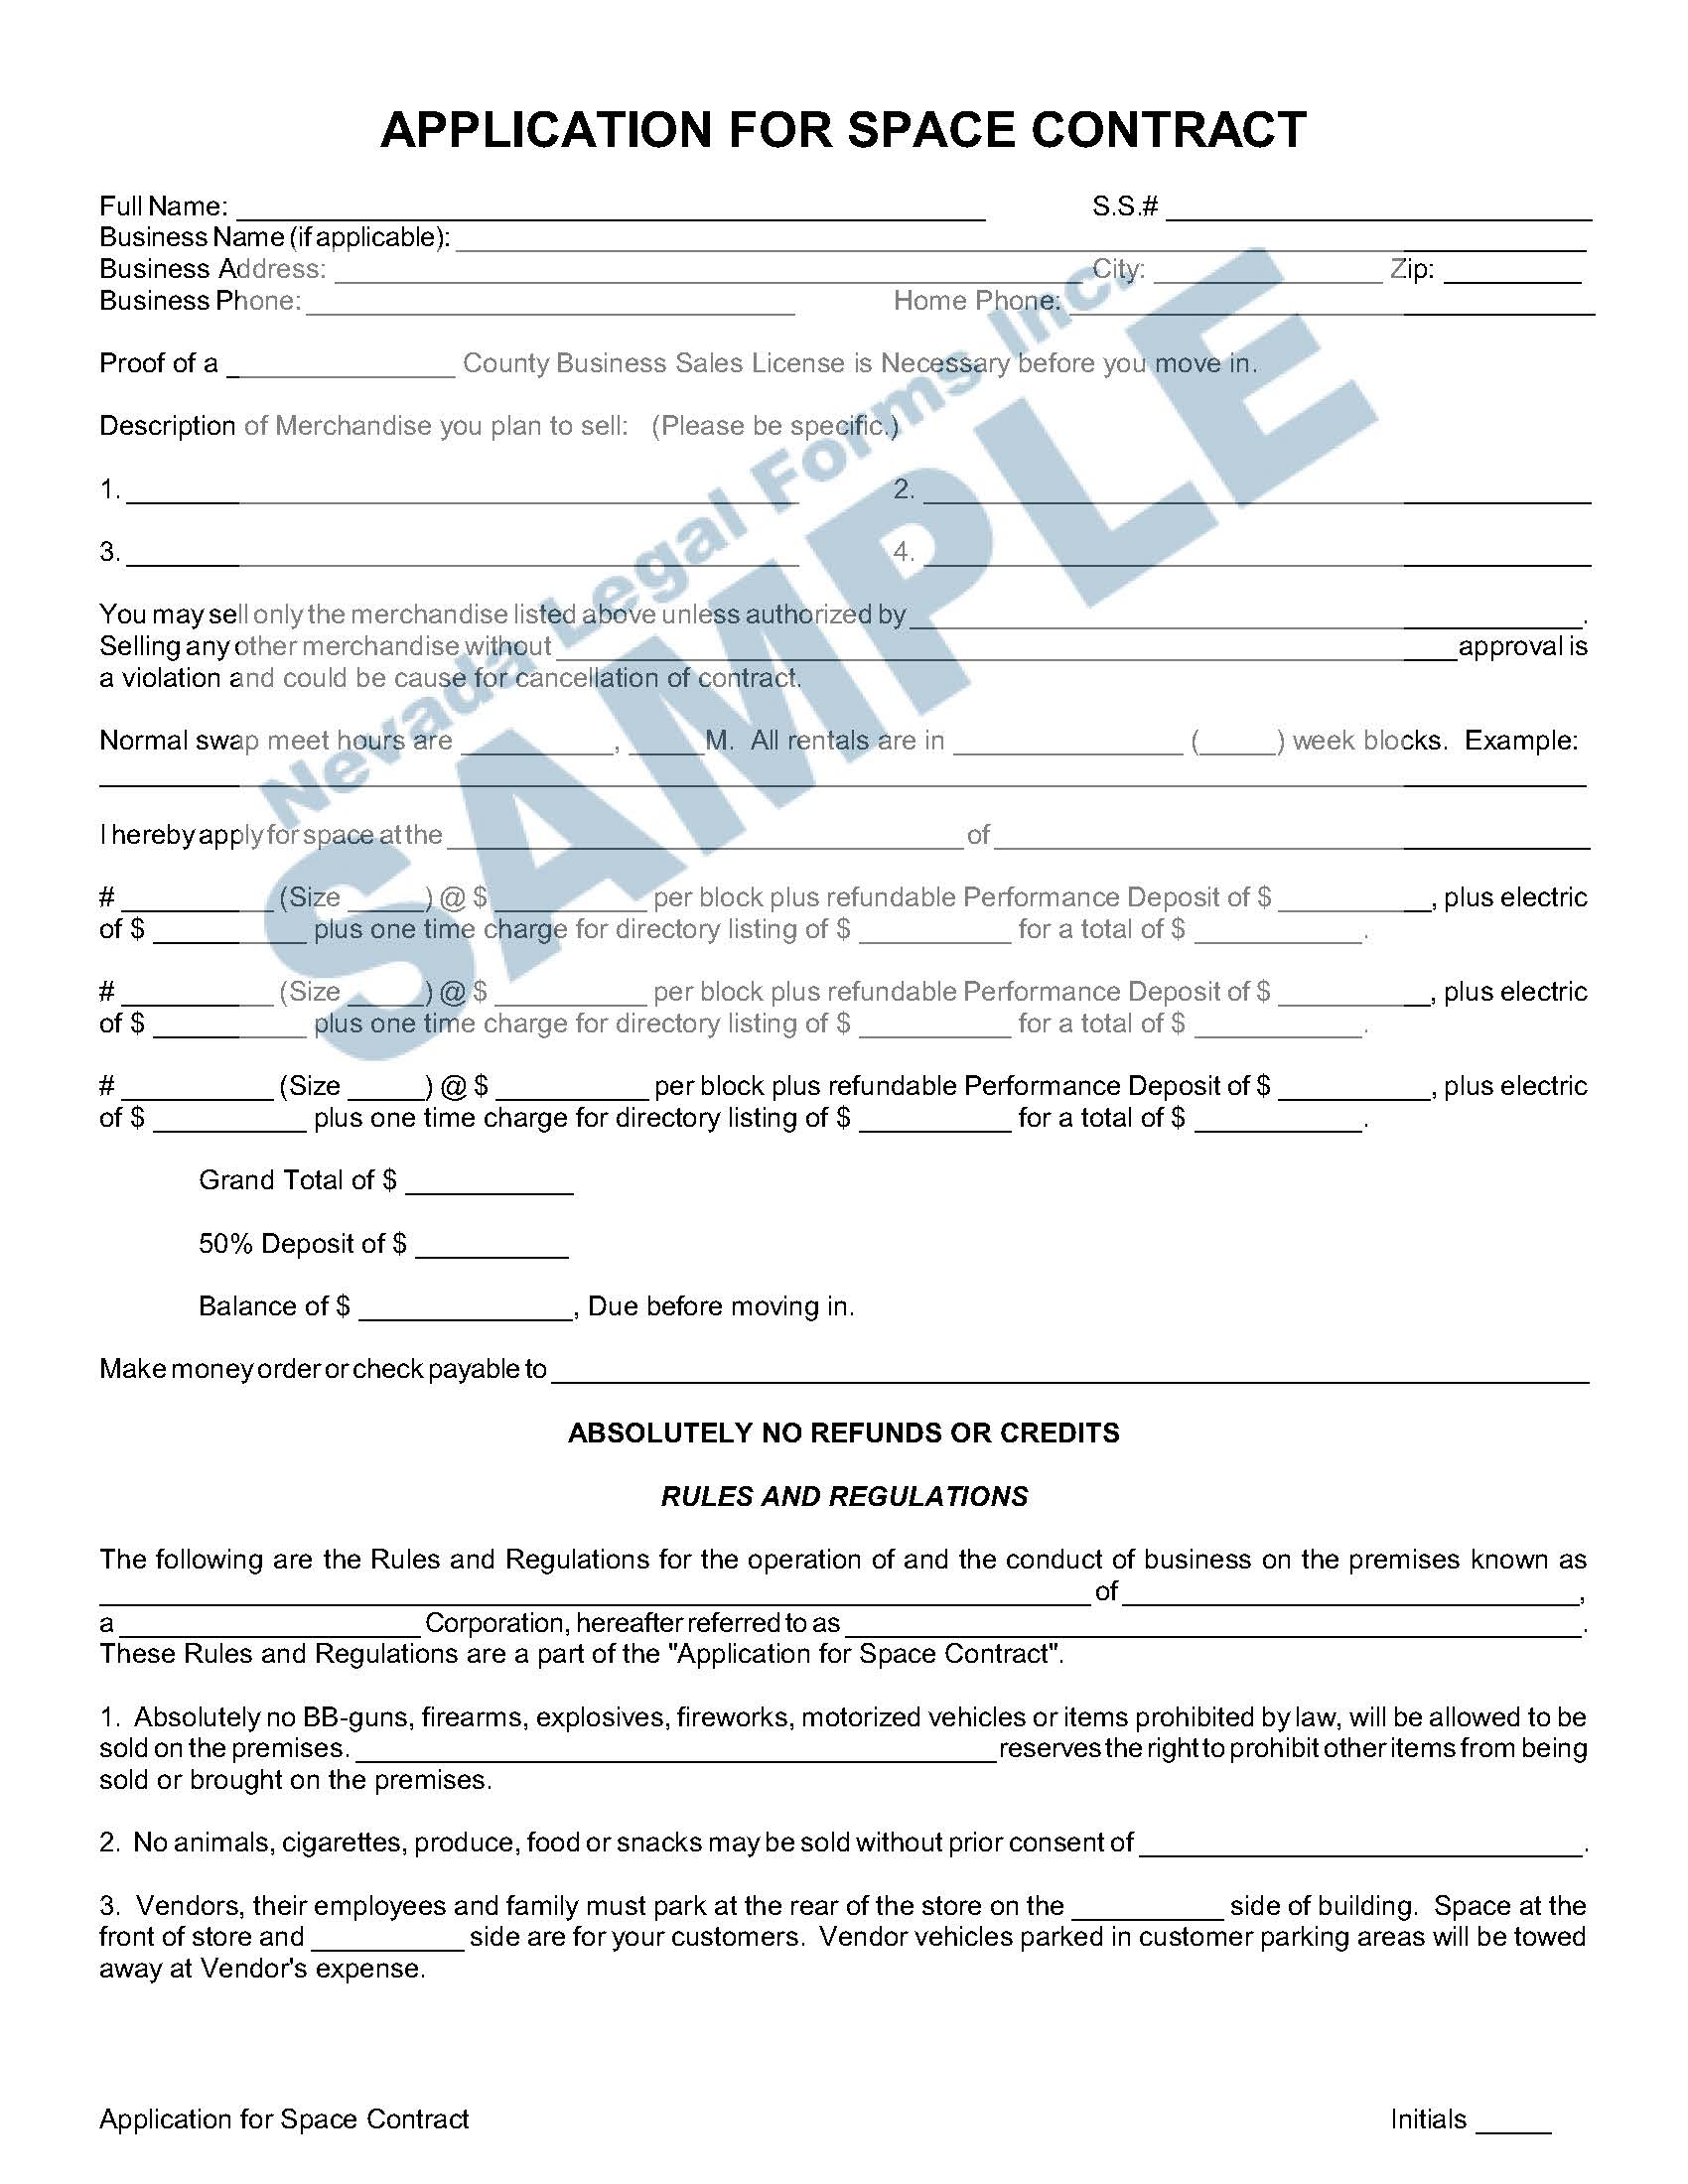 Application For Space Contract